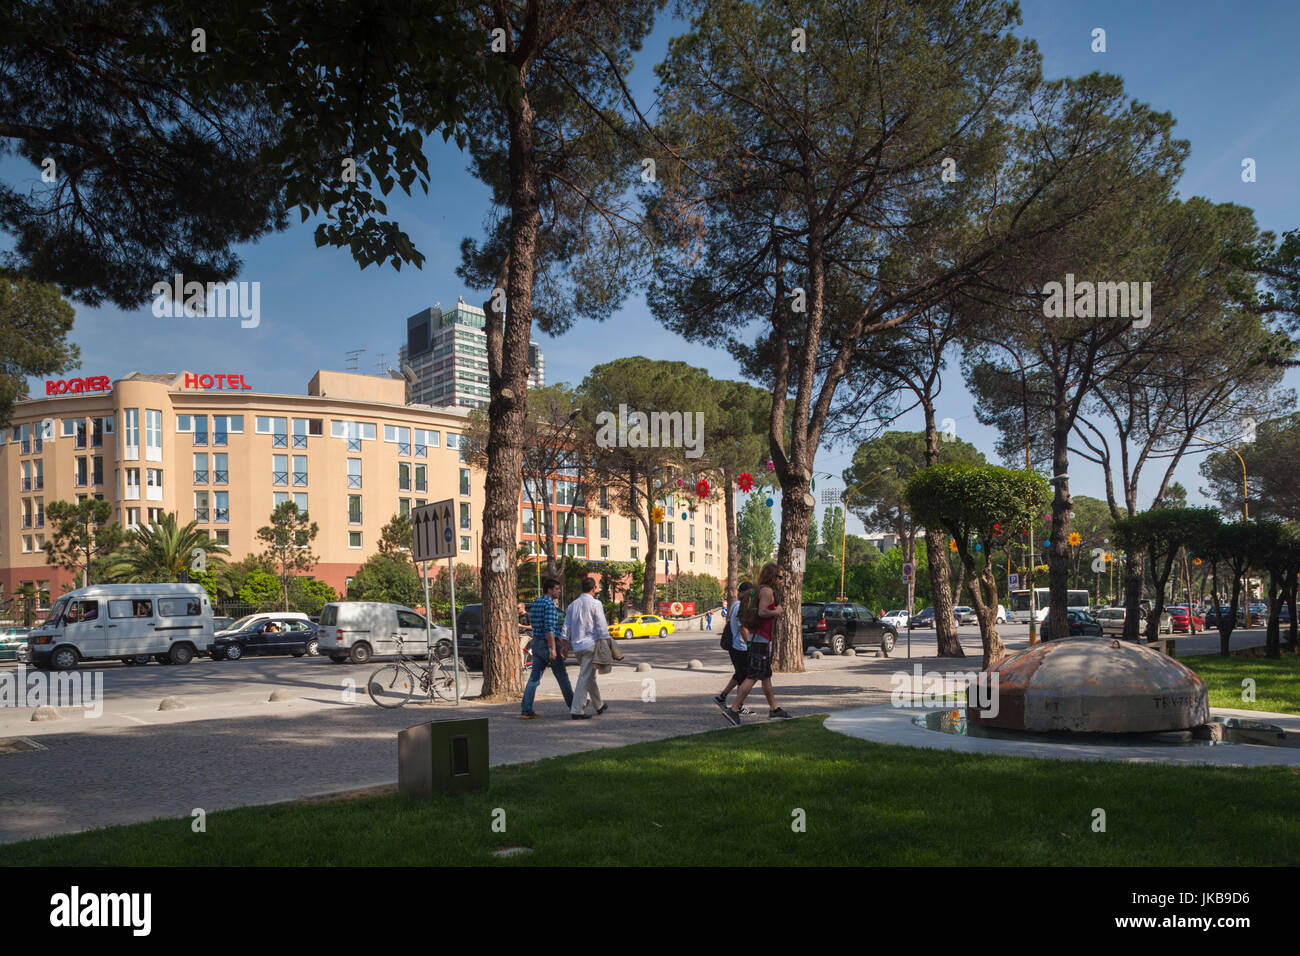 Albania, Tirana, bunker outside Blloku area, formerly used by Communist party elite and Rogner Hotel - Stock Image